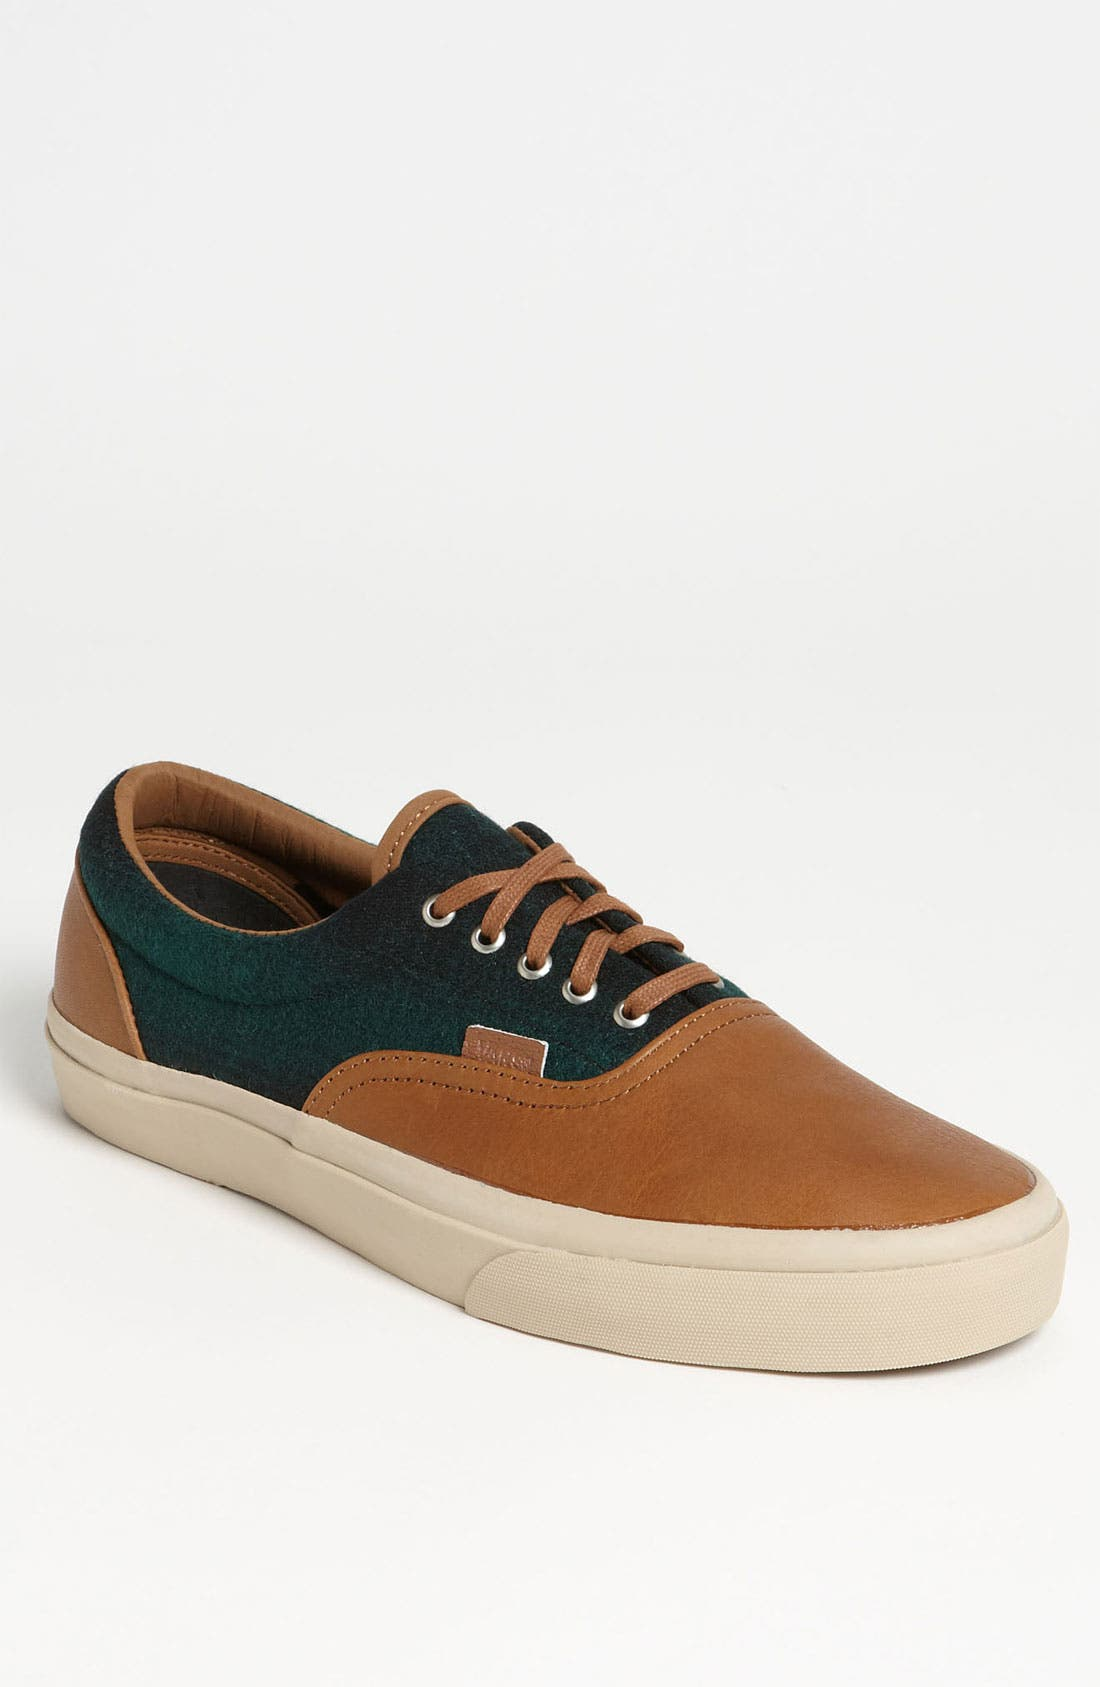 Alternate Image 1 Selected - Vans 'Cali - Era' Sneaker (Men)